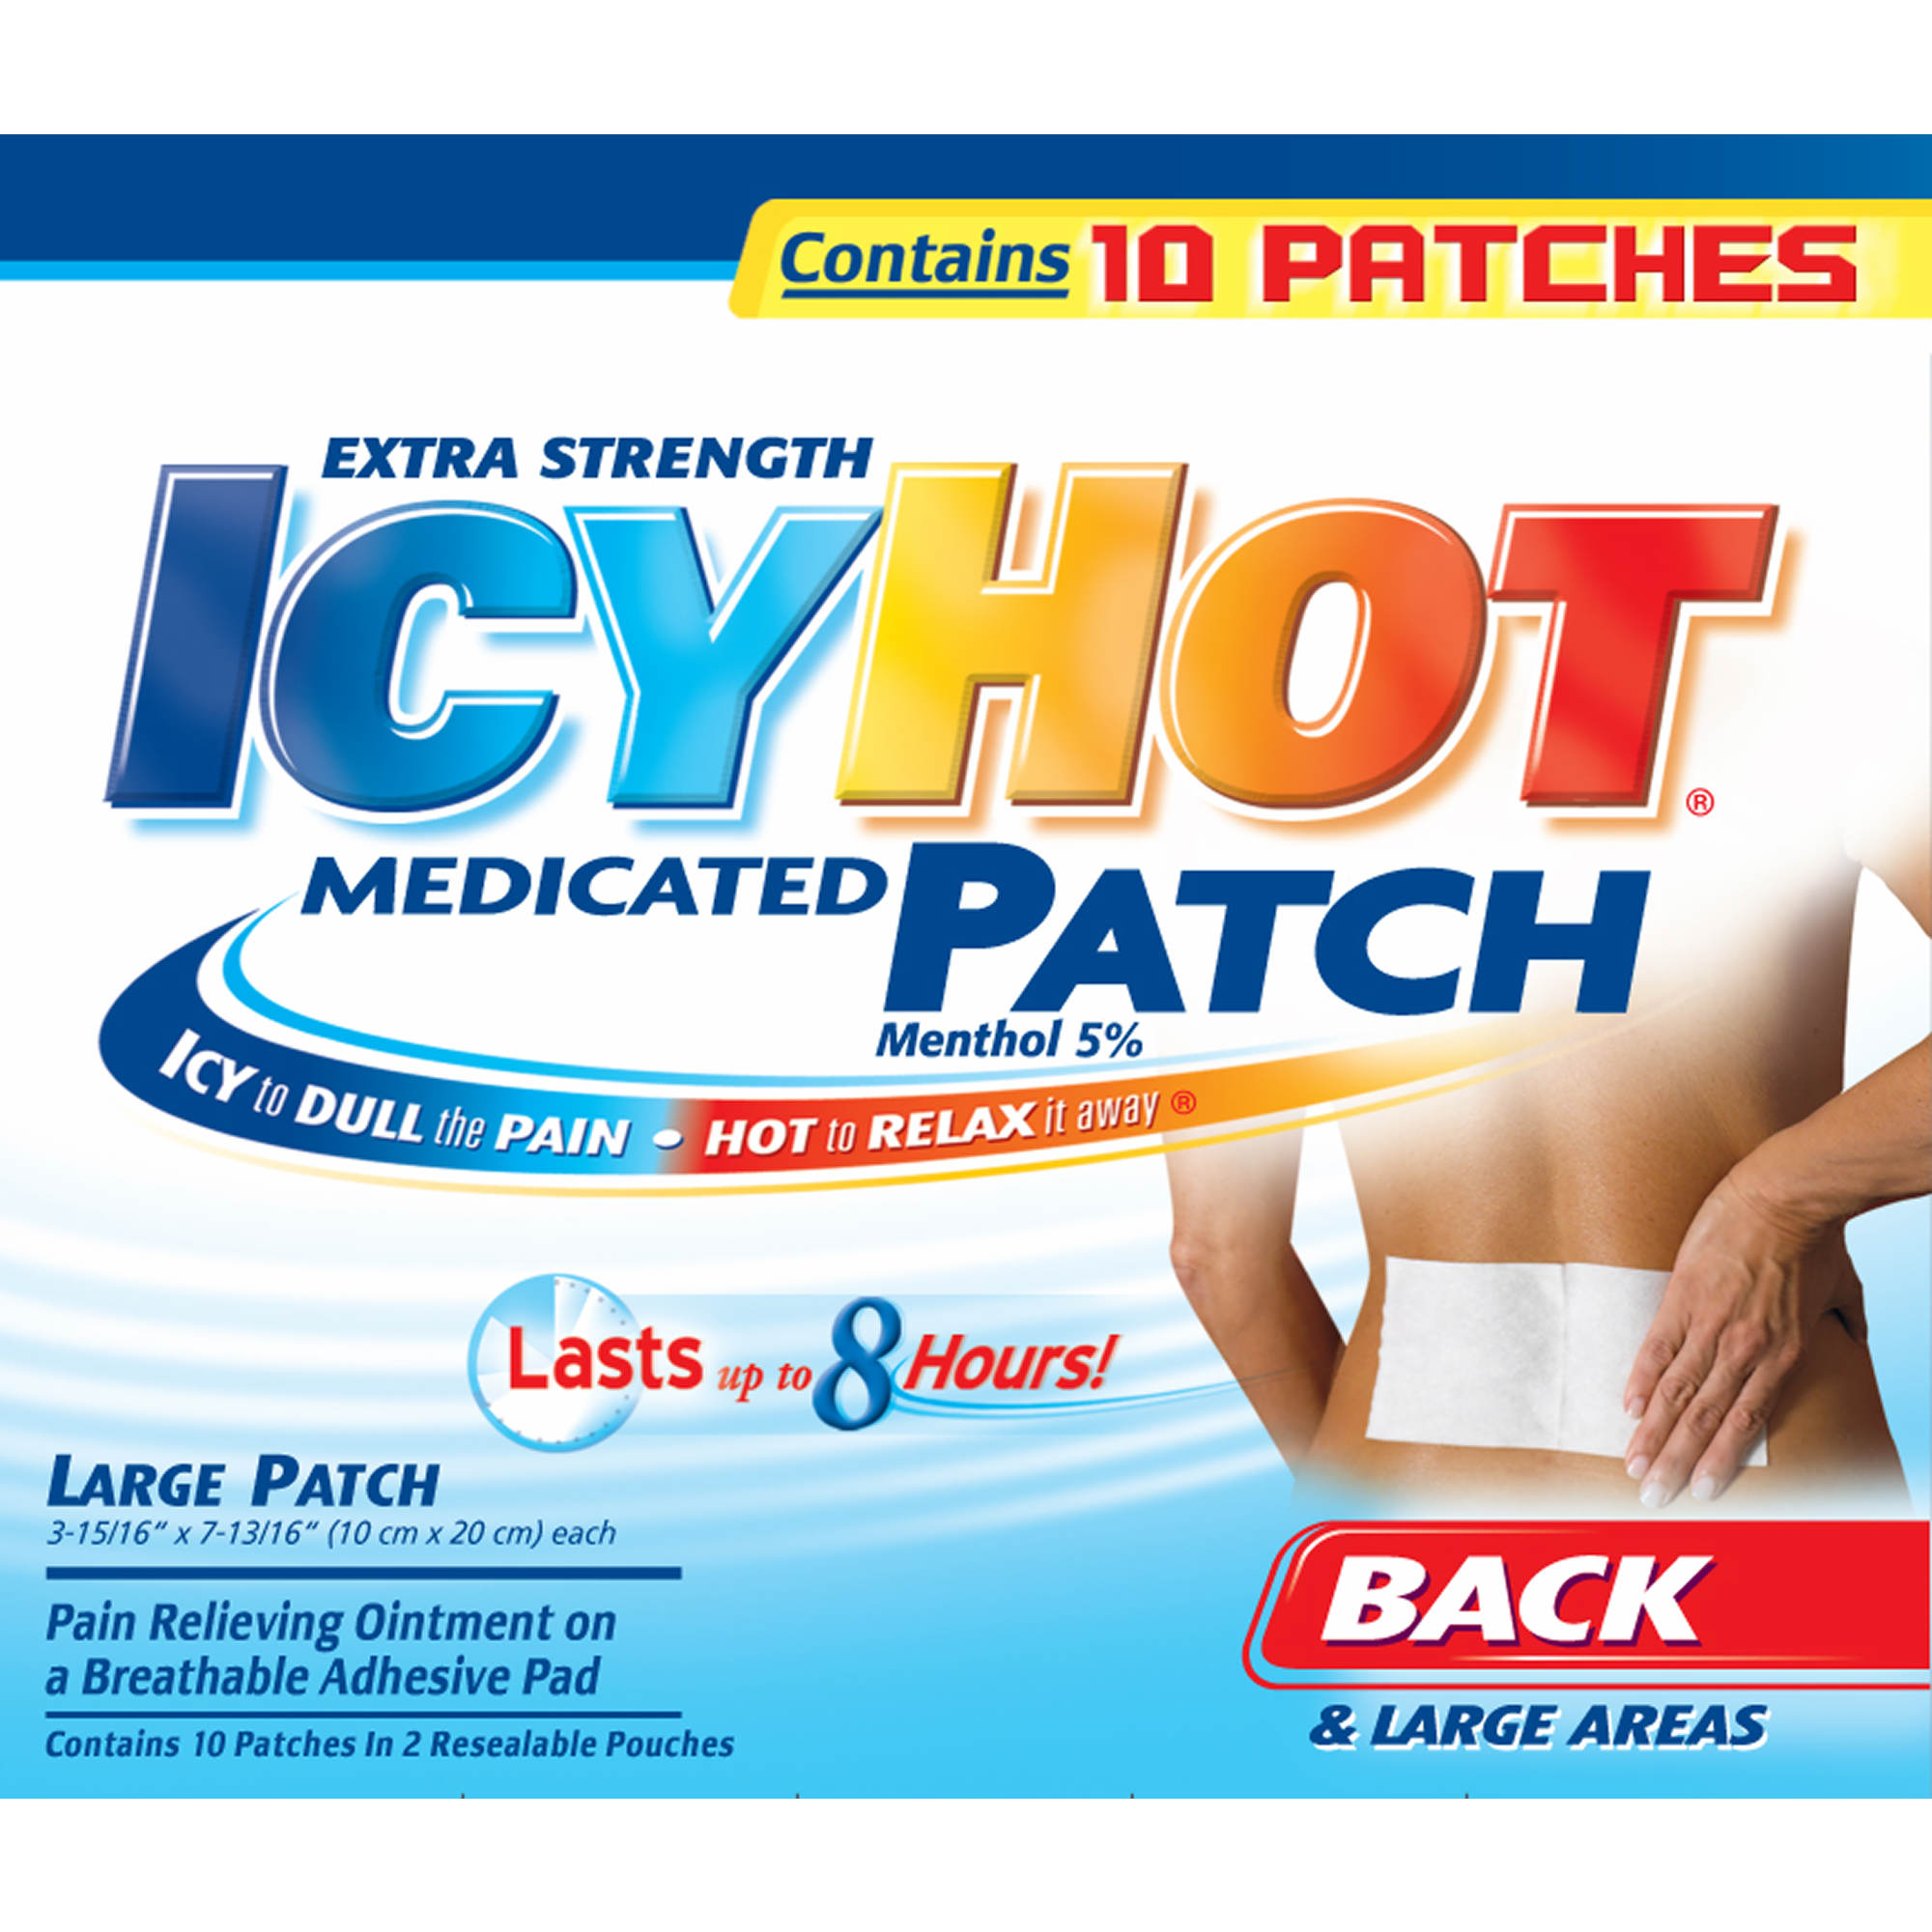 icy hot patch instructions